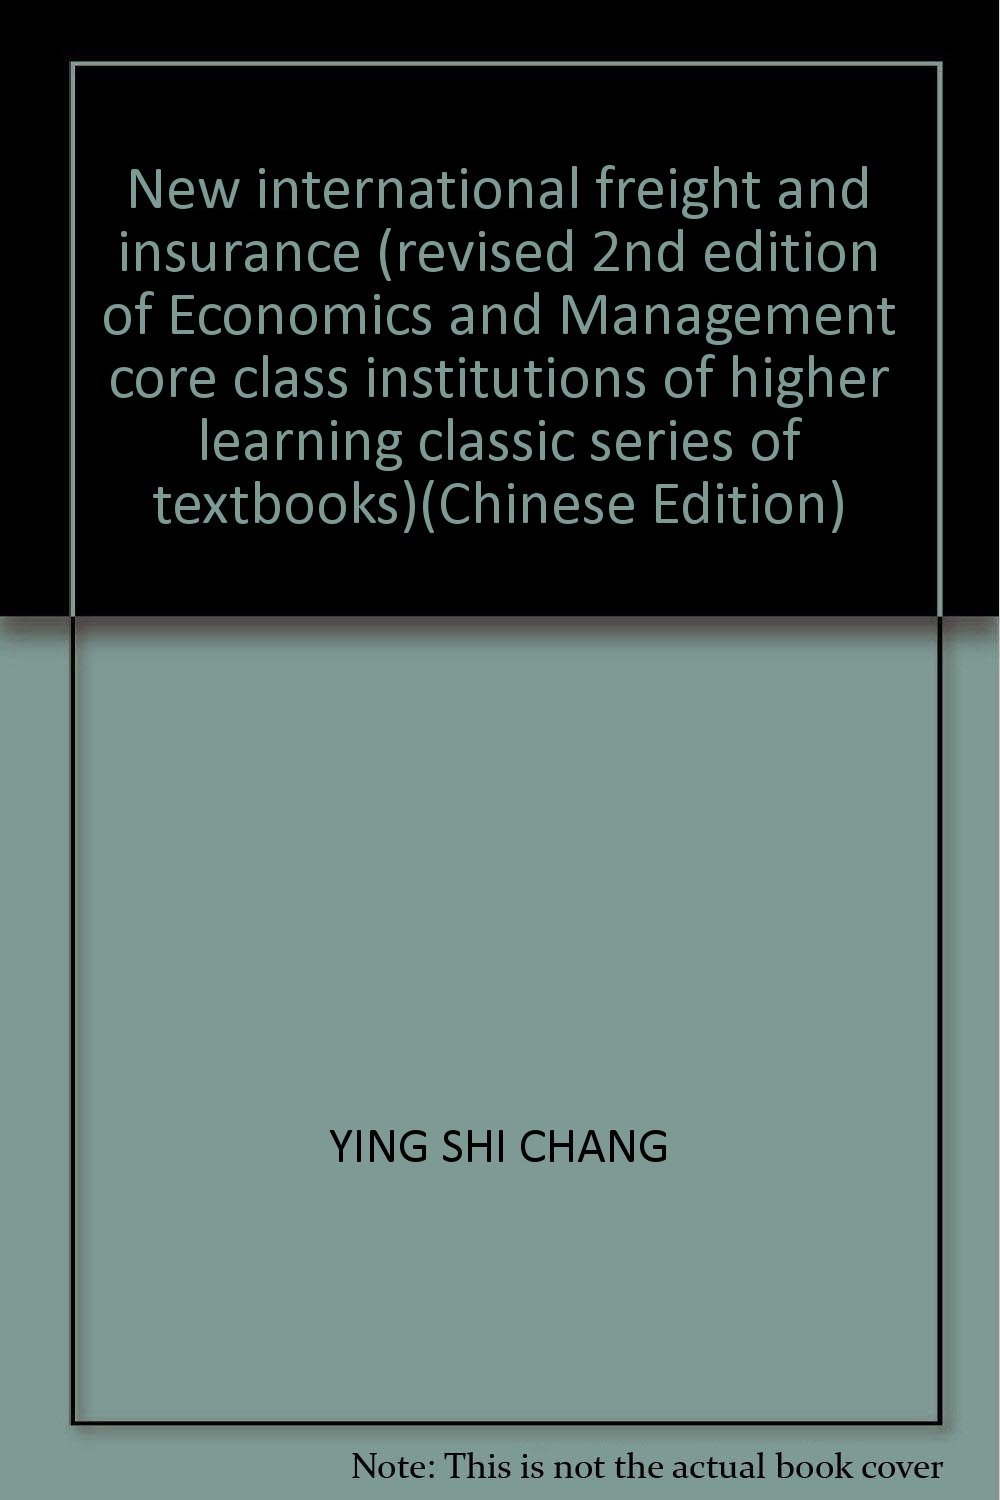 New international freight and insurance (revised 2nd edition of Economics and Management core class institutions of higher learning classic series of textbooks)(Chinese Edition) ebook